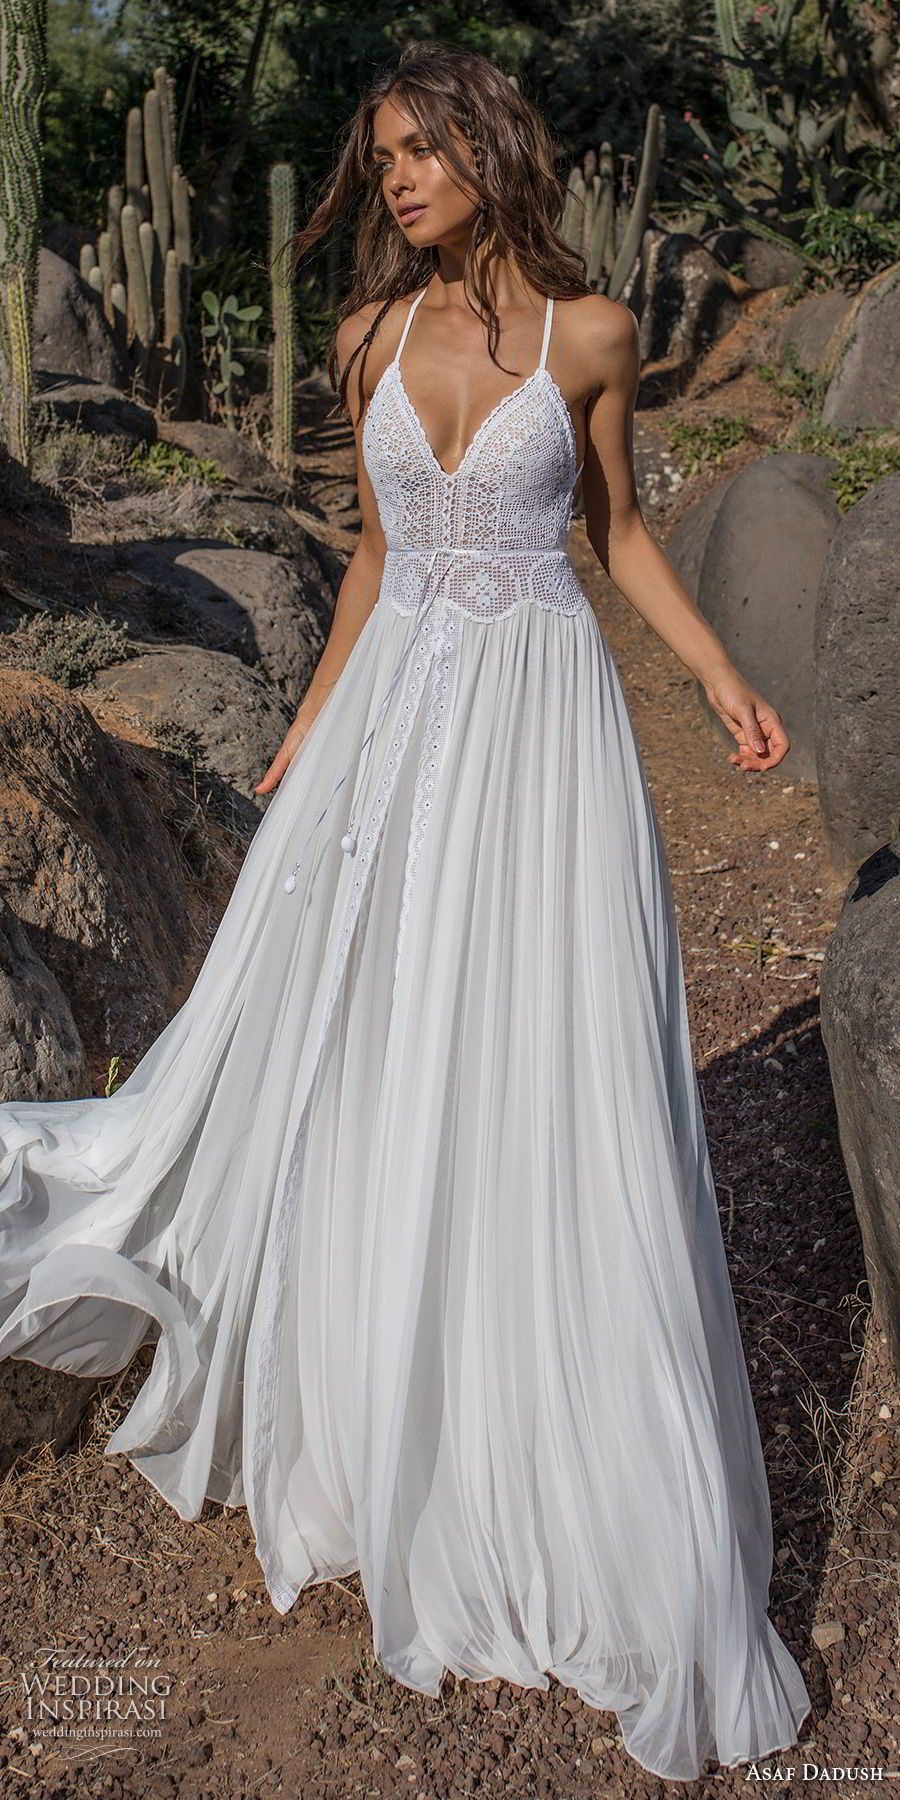 c6f4e397254 asaf dadush 2018 bridal sleeveless thin strap sweetheart neckline heavily  embellished bodice romantic bohemian soft a line wedding dress open strap  back ...